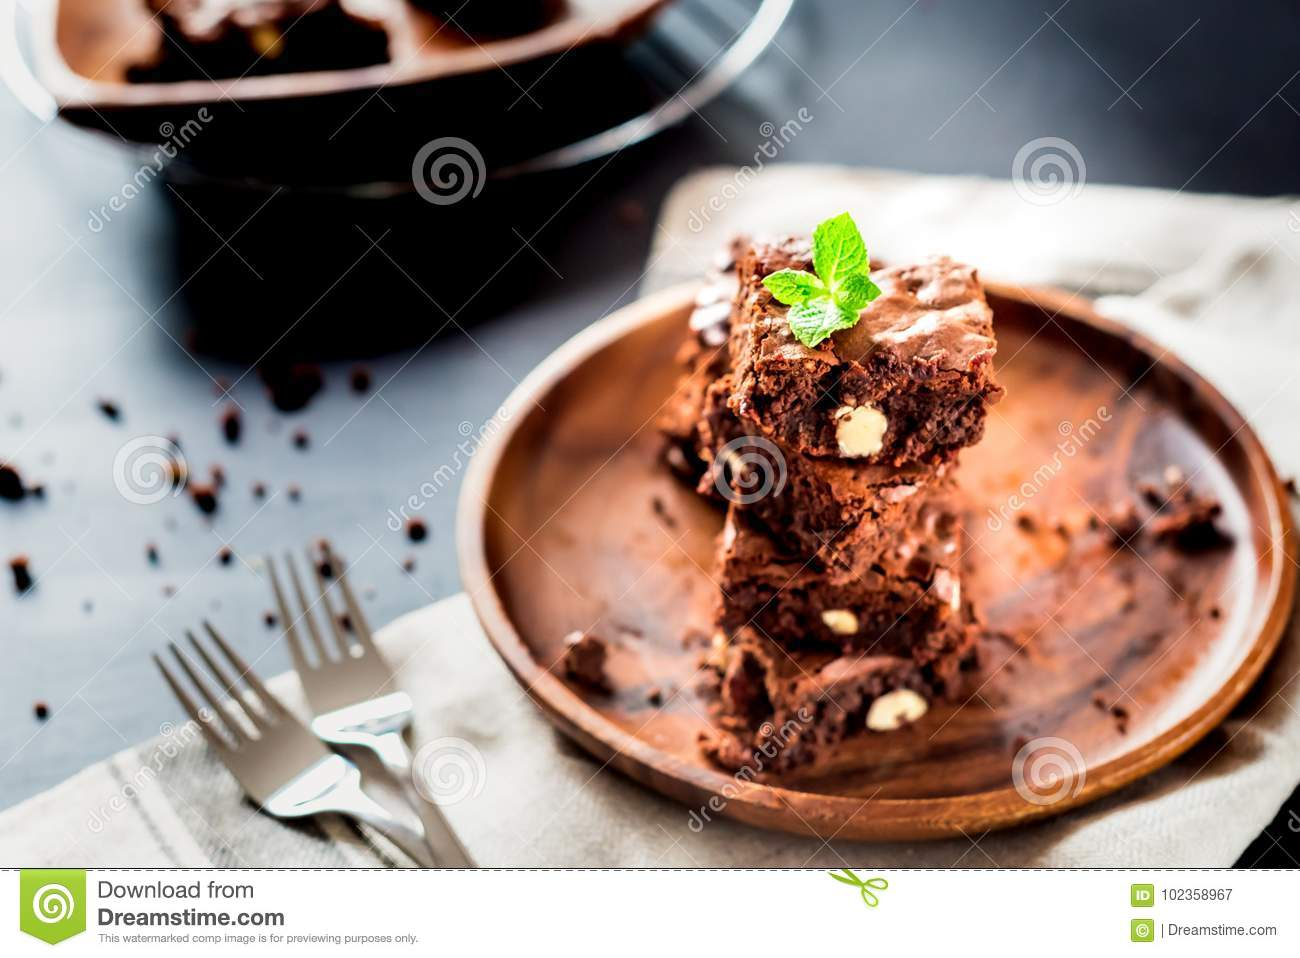 Homemade Dark Chocolate Brownies Slices And Mint On Wood Table With